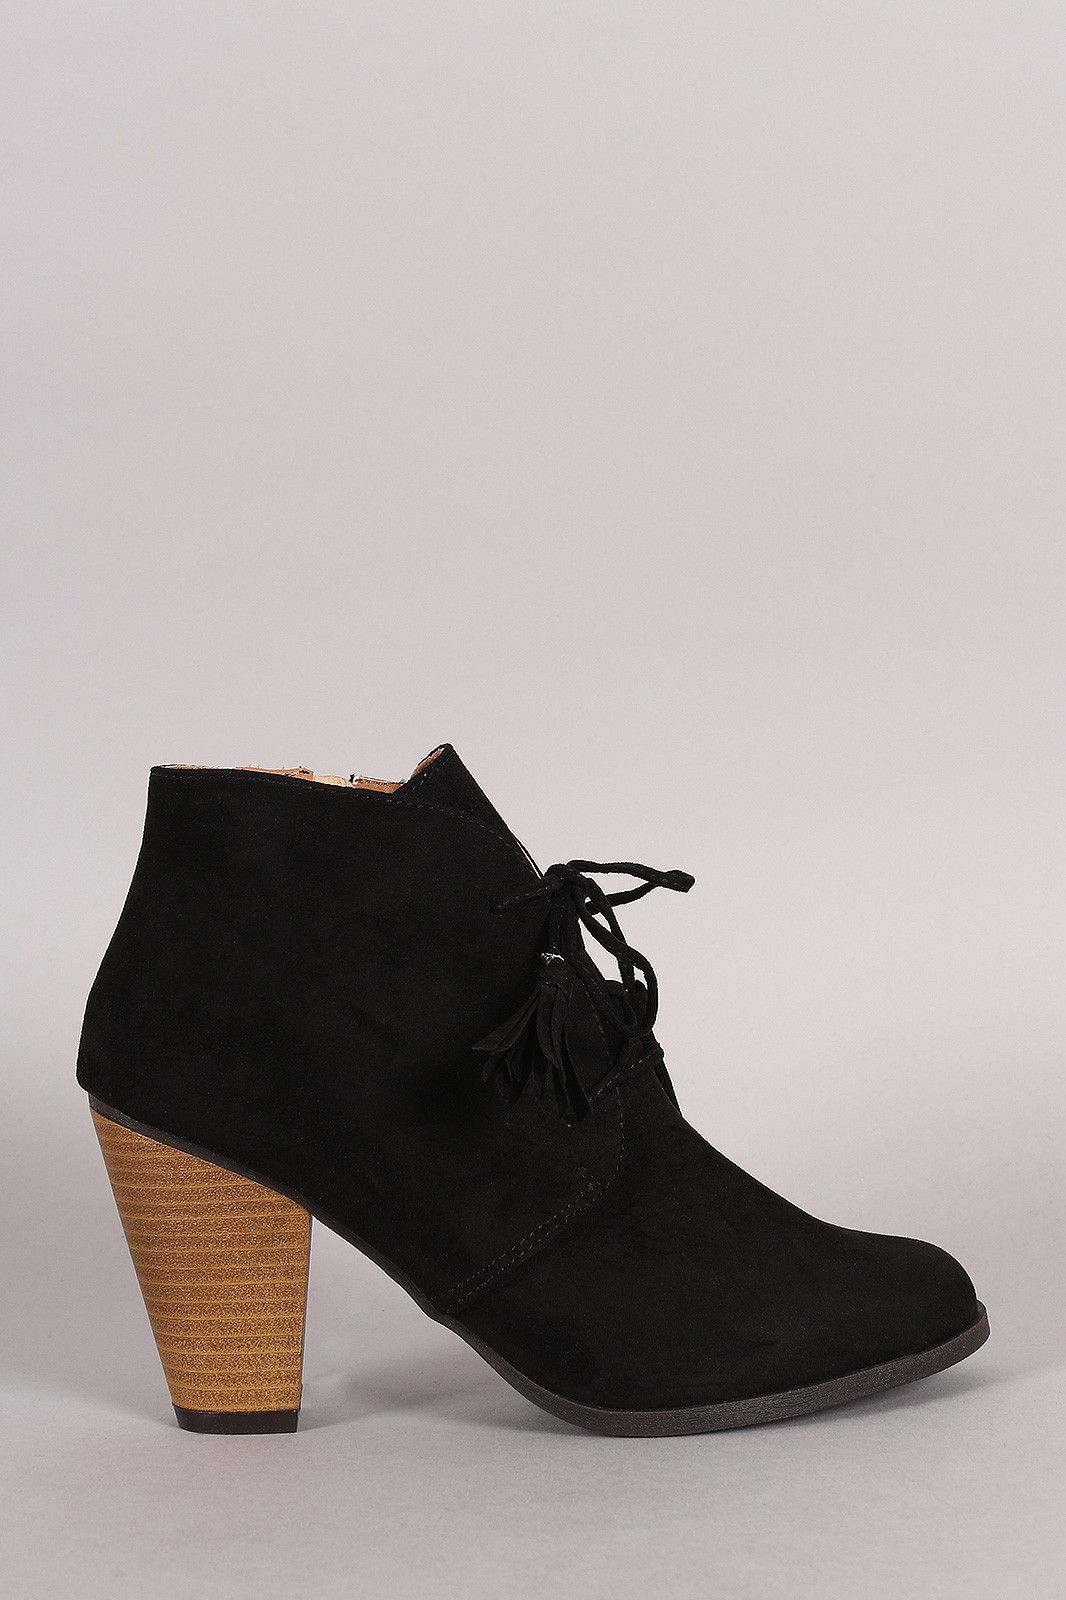 0e0db652c44 Qupid Suede Western Cowgirl Lace Up Ankle Boots